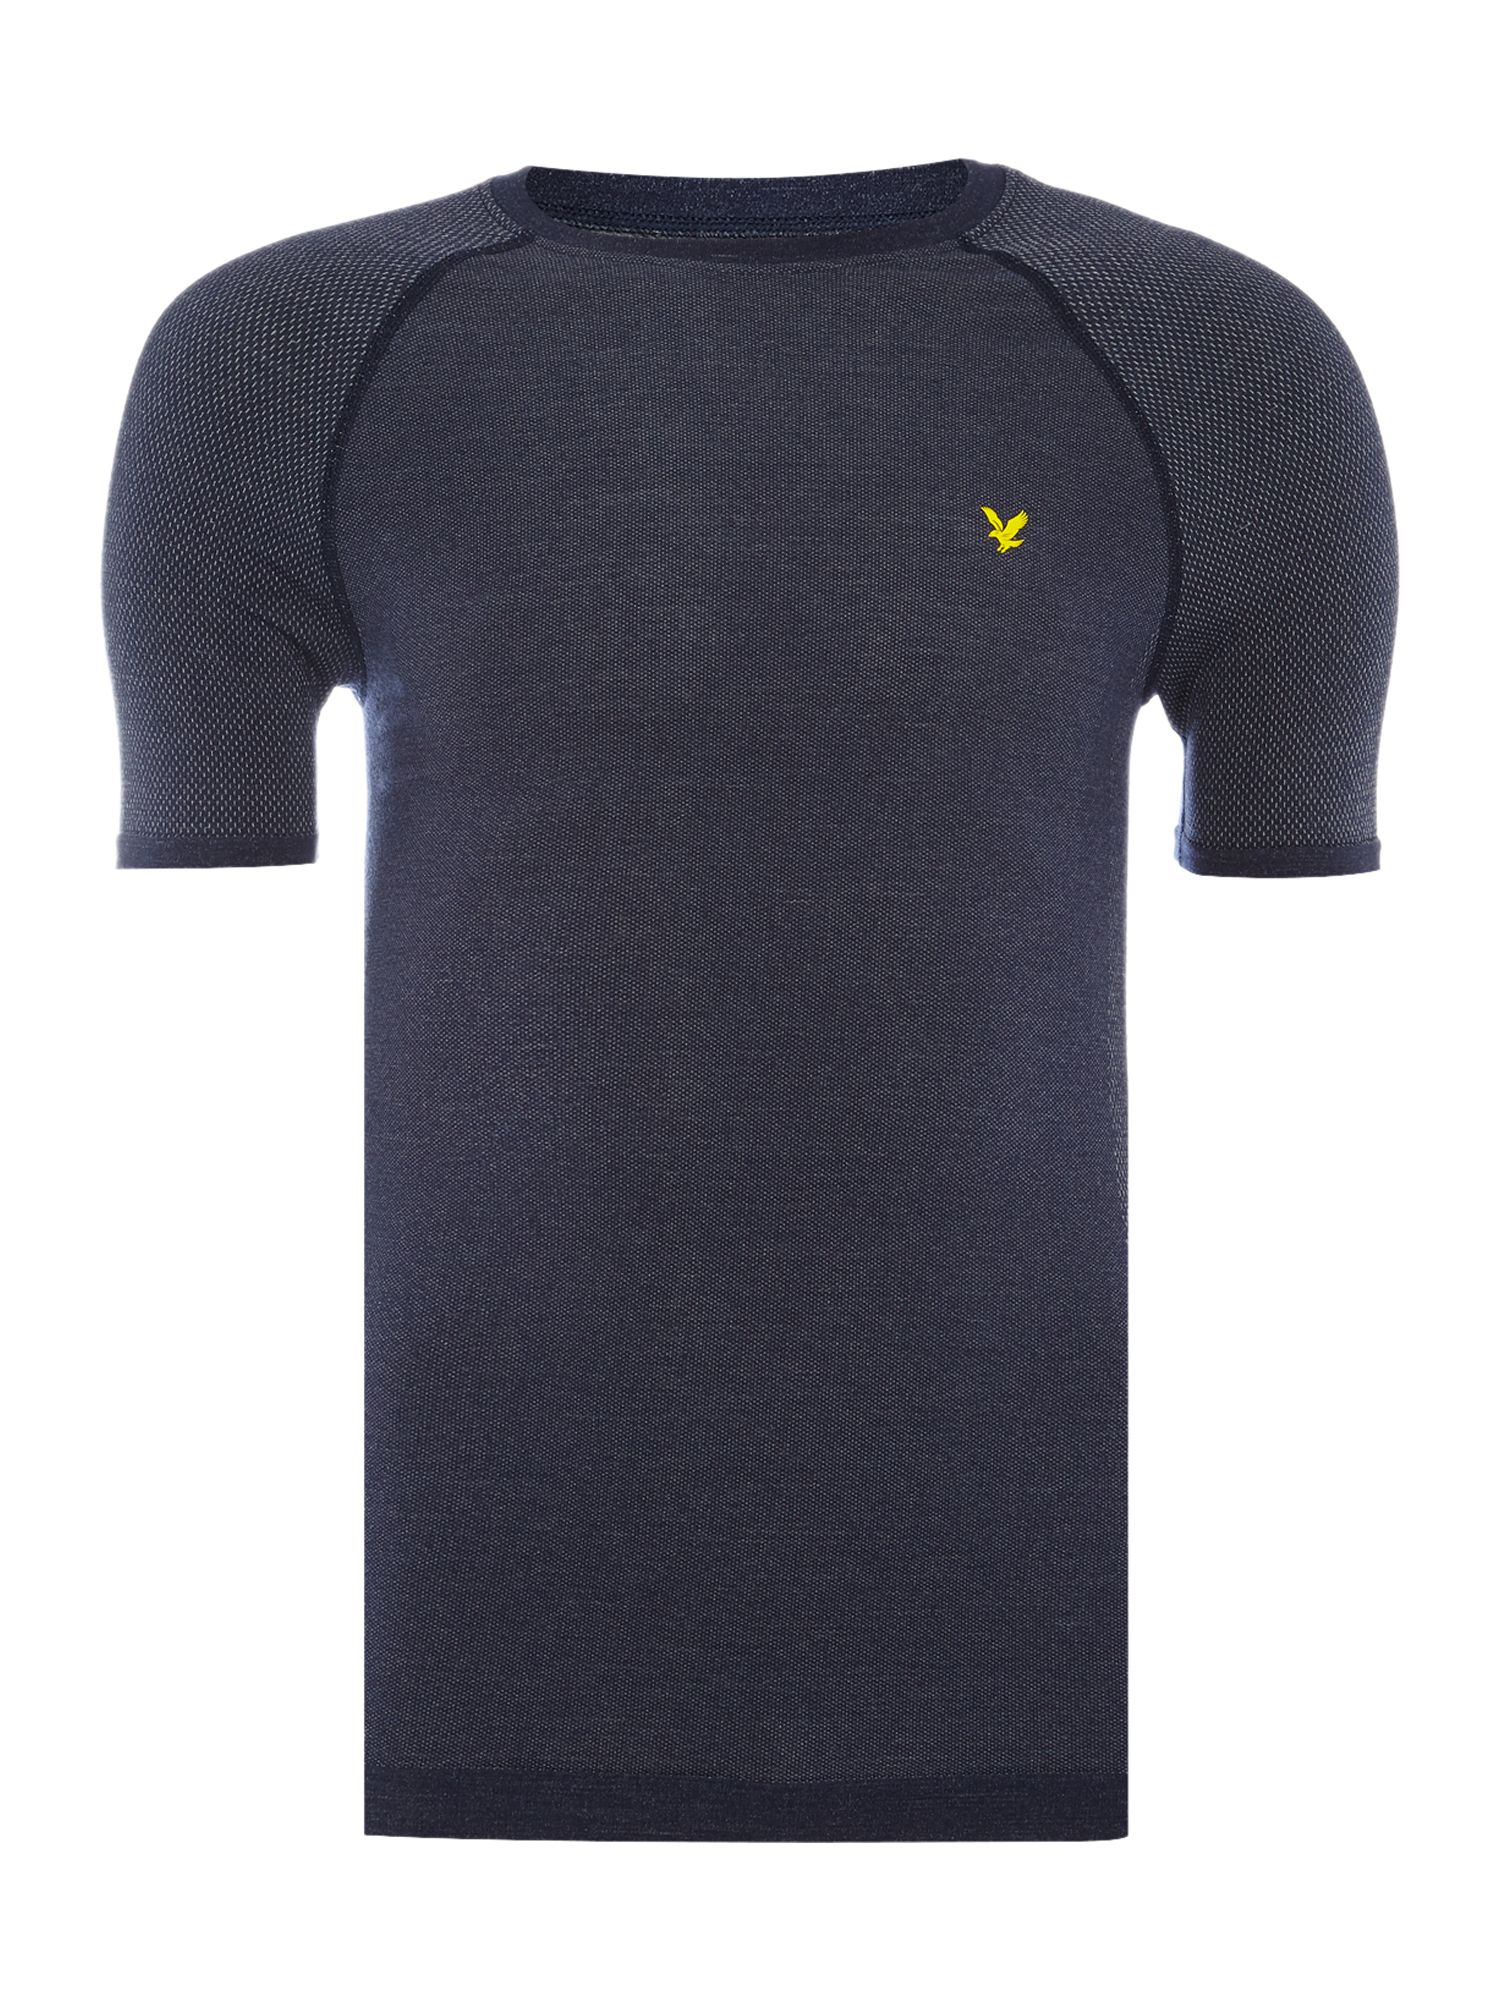 Lyle and Scott Men's Lyle and Scott Sports Short sleeve base layer top, Navy